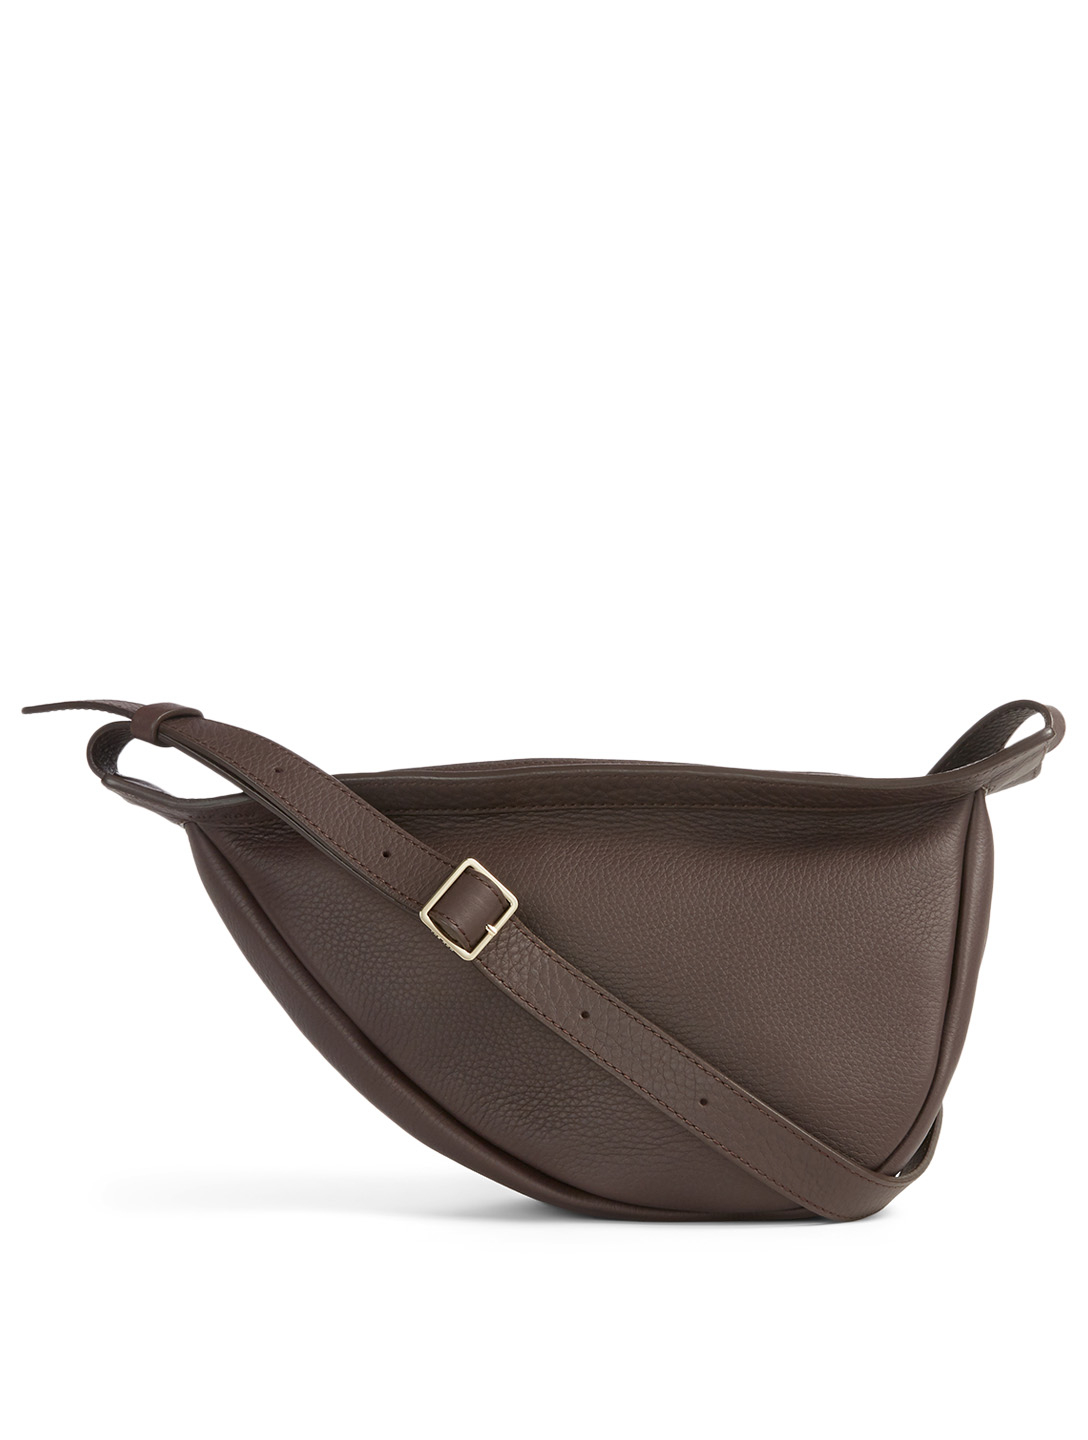 THE ROW Small Slouchy Banana Leather Bag Women's Purple